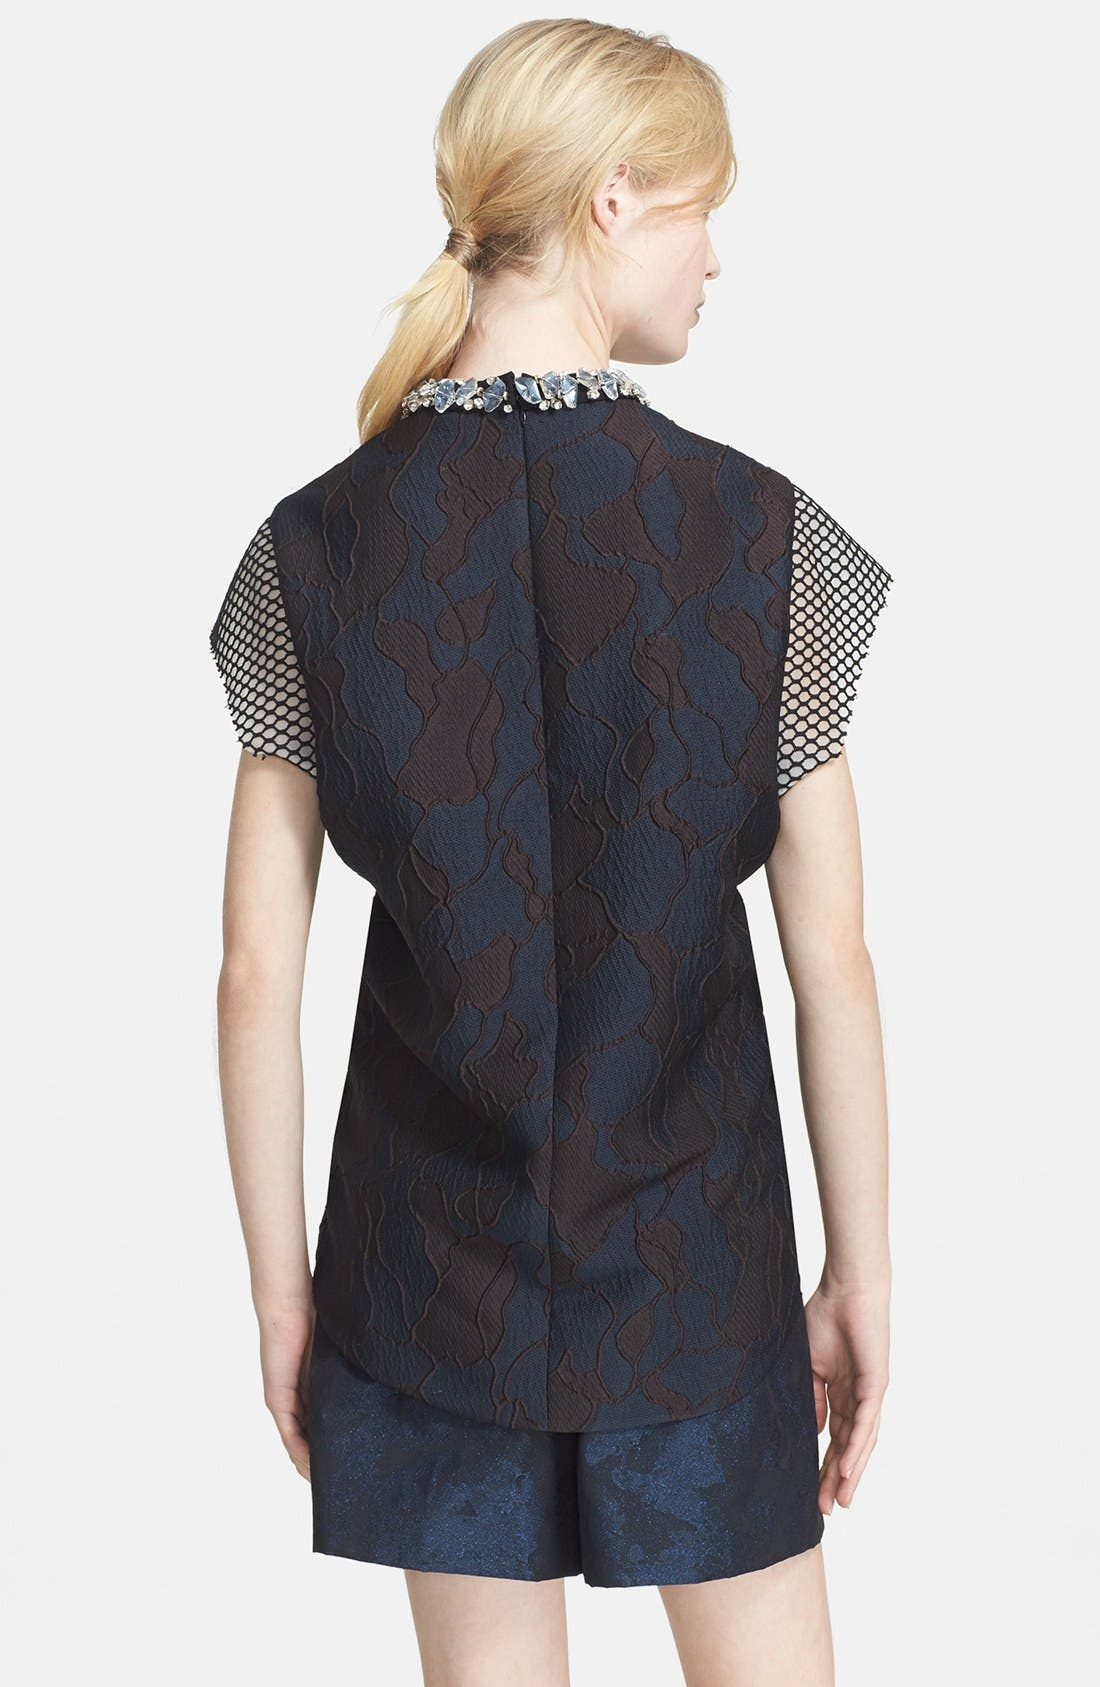 3.1 PHILLIP LIM,                             Mesh Inset Top with Crystal Rocks Neckline,                             Alternate thumbnail 2, color,                             440